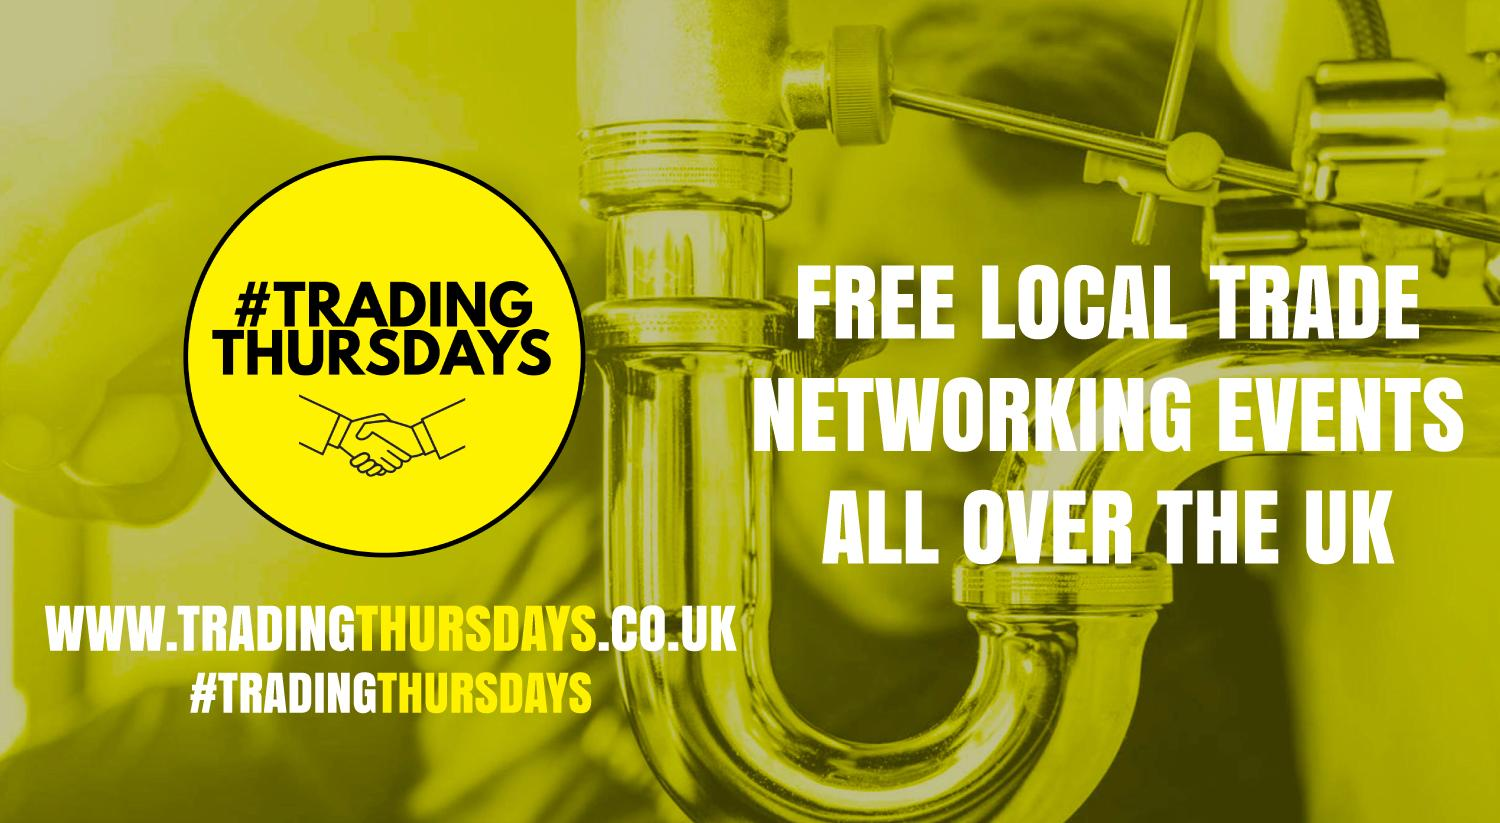 Trading Thursdays! Free networking event for traders in Wakefield